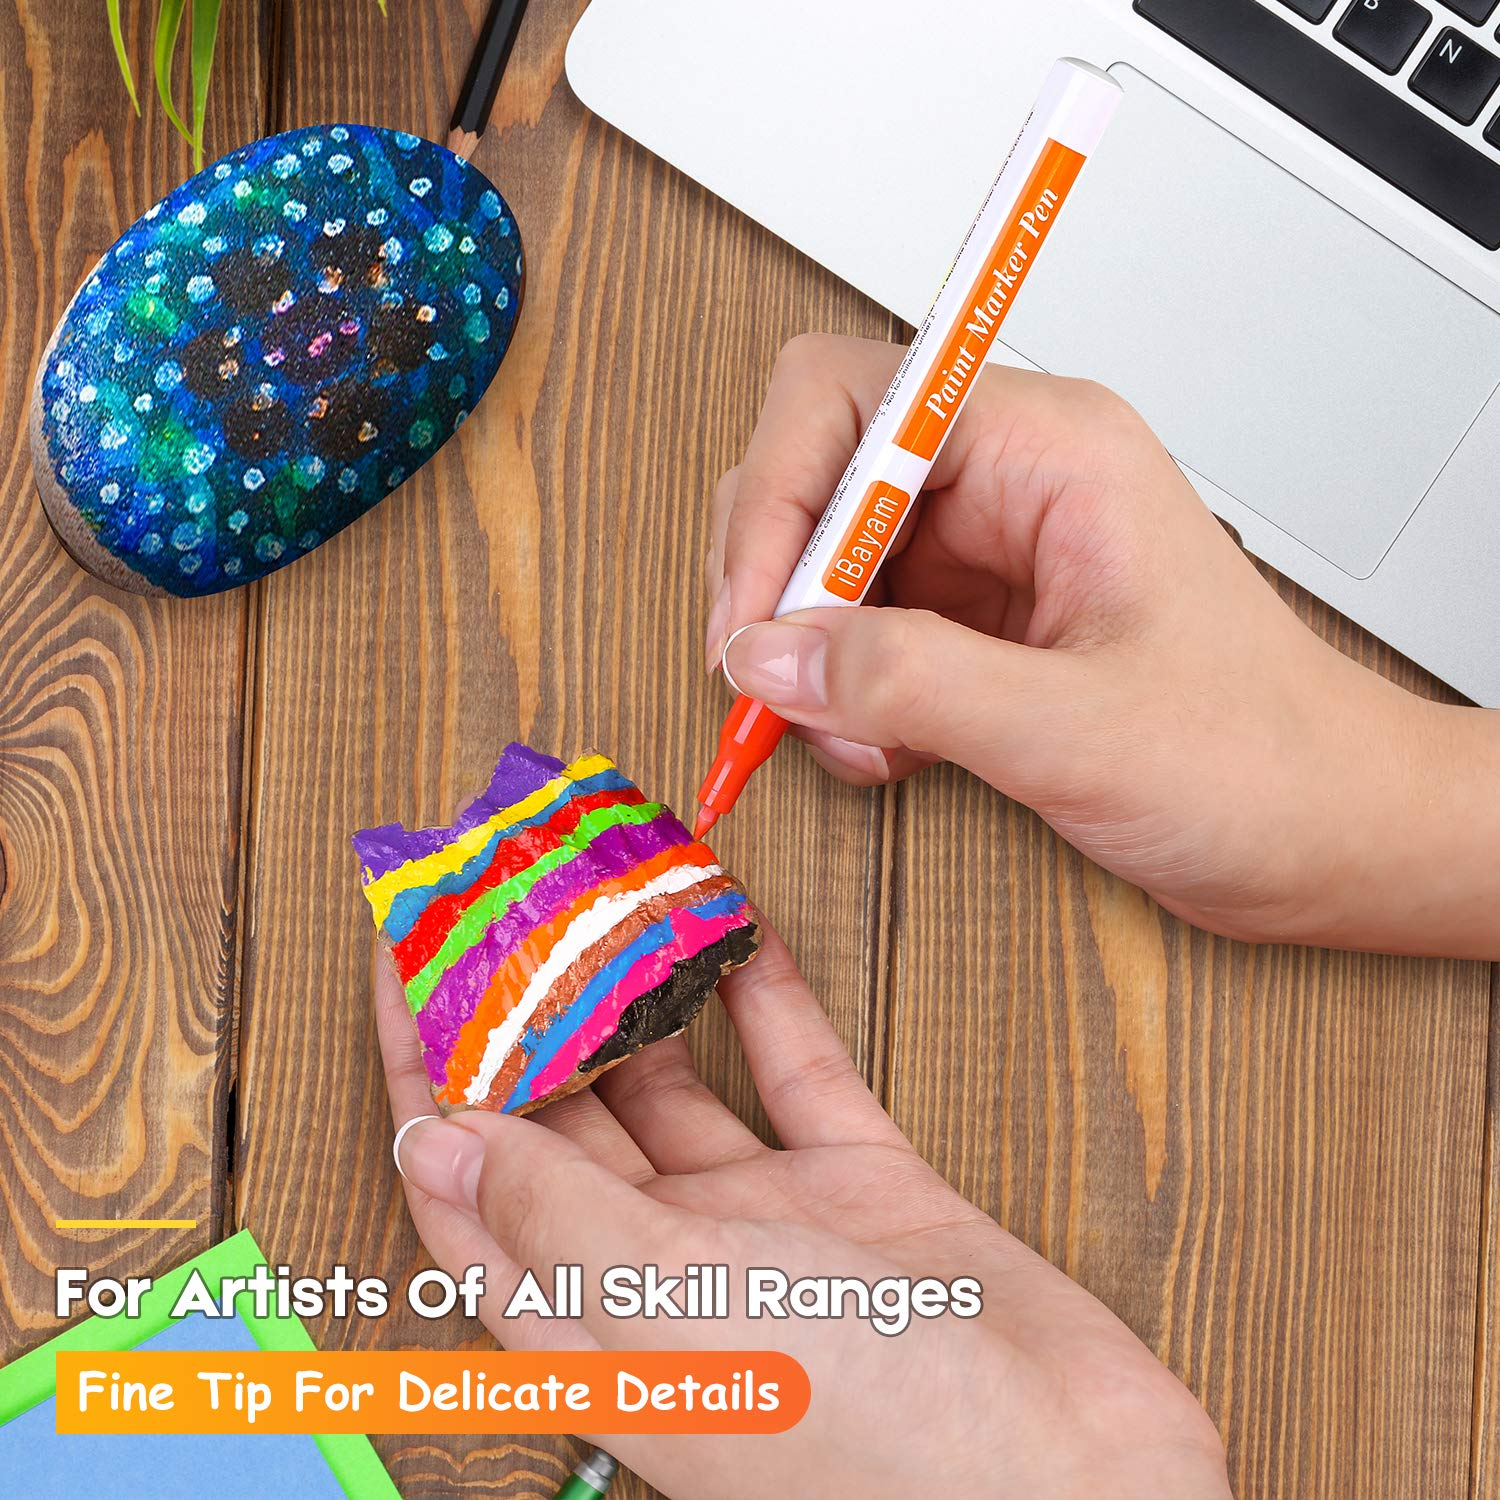 iBayam Paint Marker Pens, Oil-Based, Extra Fine Point, 21 Colors, Odorless, Expert of Rock, Wood, Glass, Metal and Ceramic Painting, Easter Egg, Xylene Free, Professional Paint Marker by iBayam (Image #3)